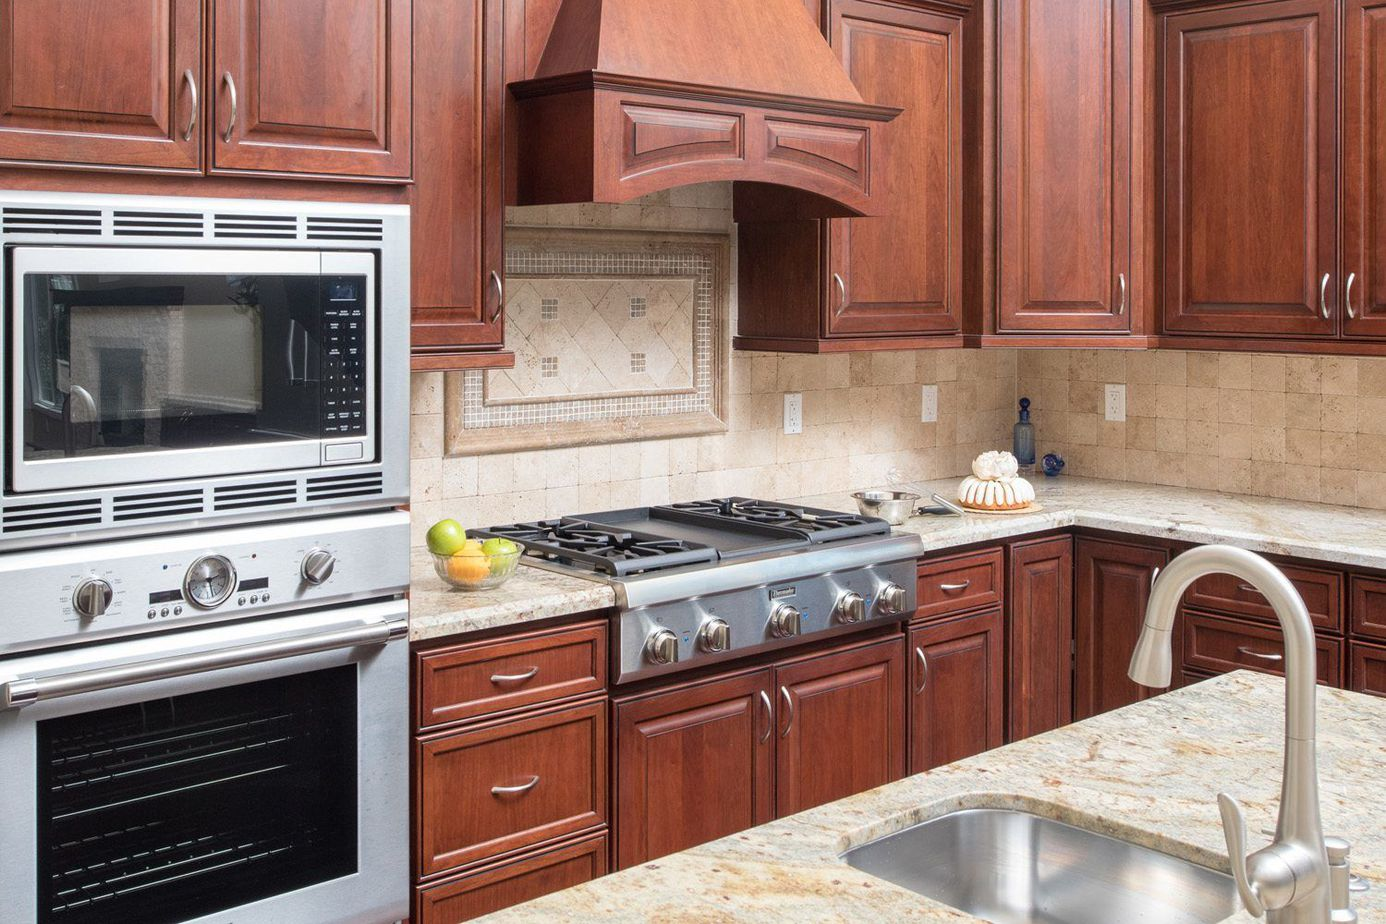 paprika colored kitchen cabinets with mosaic tile backsplash over the cooktop